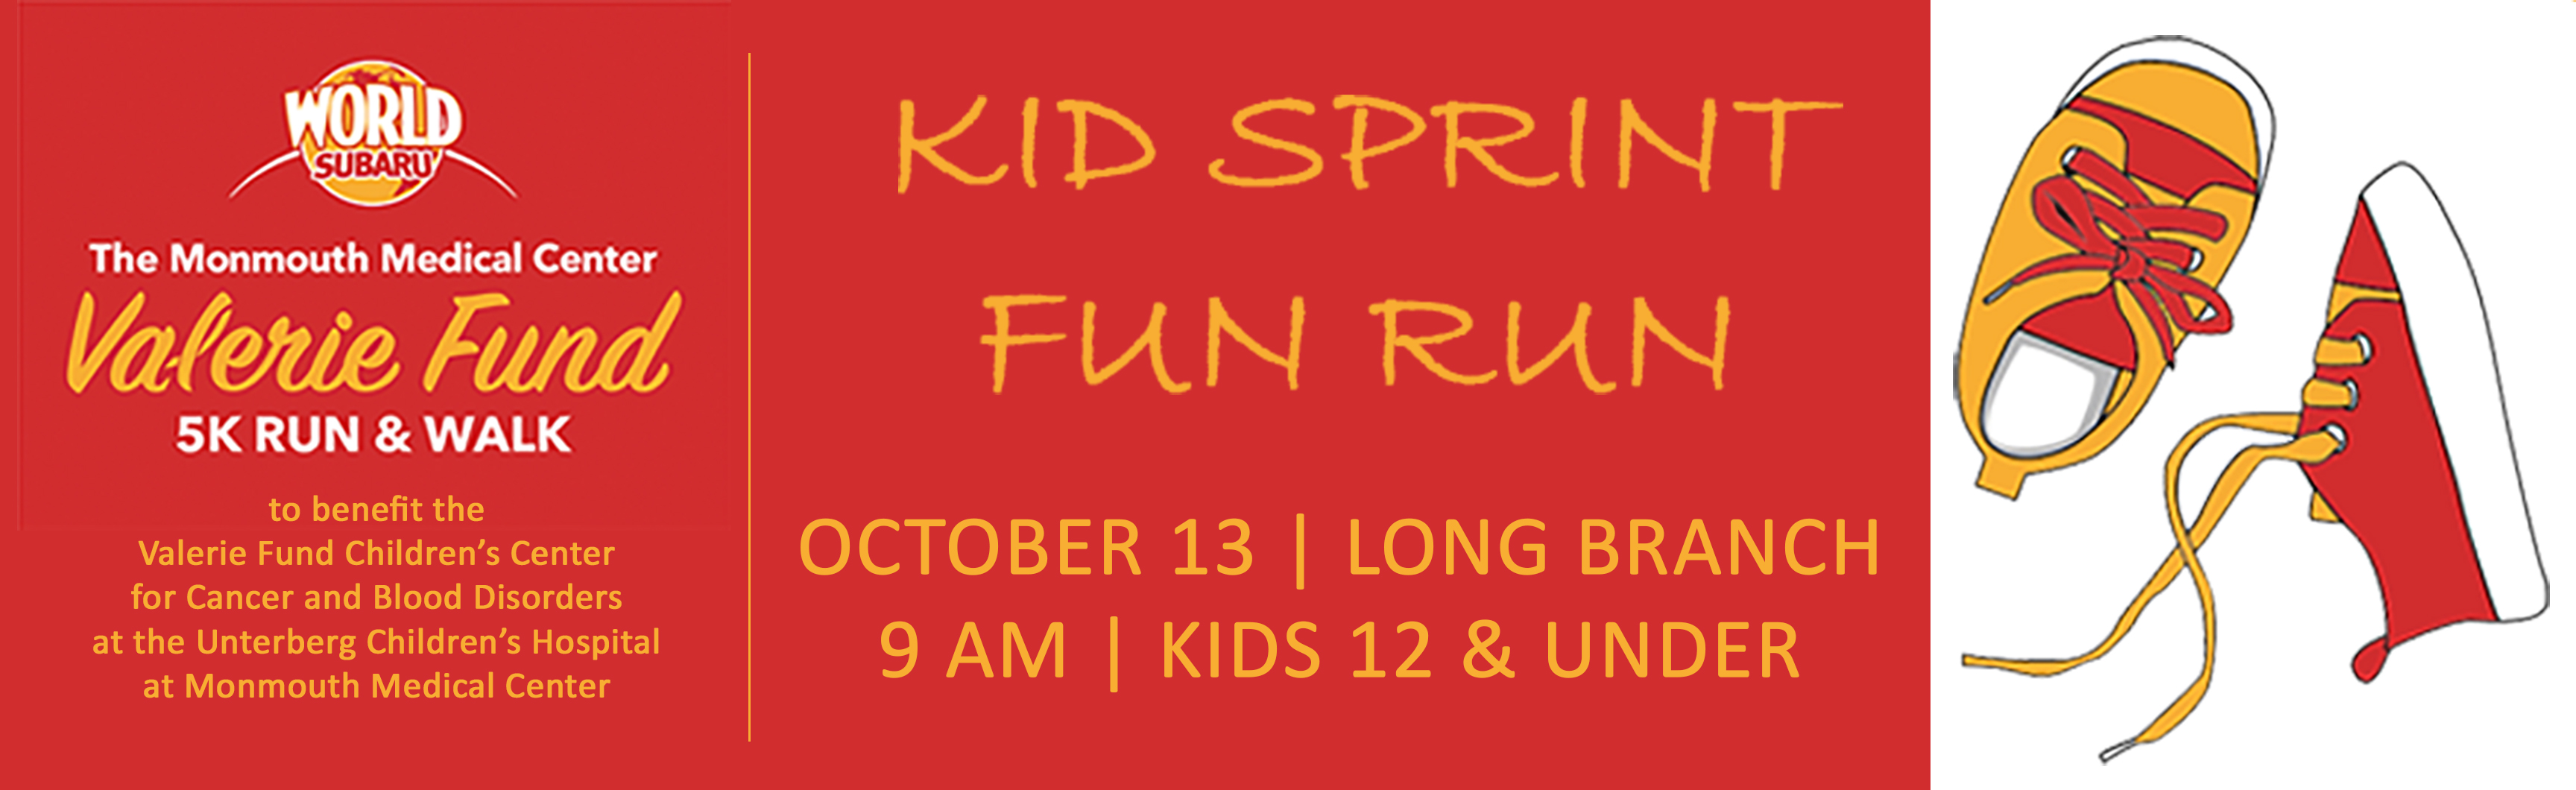 Kid Sprint Website Banner TRNS wide